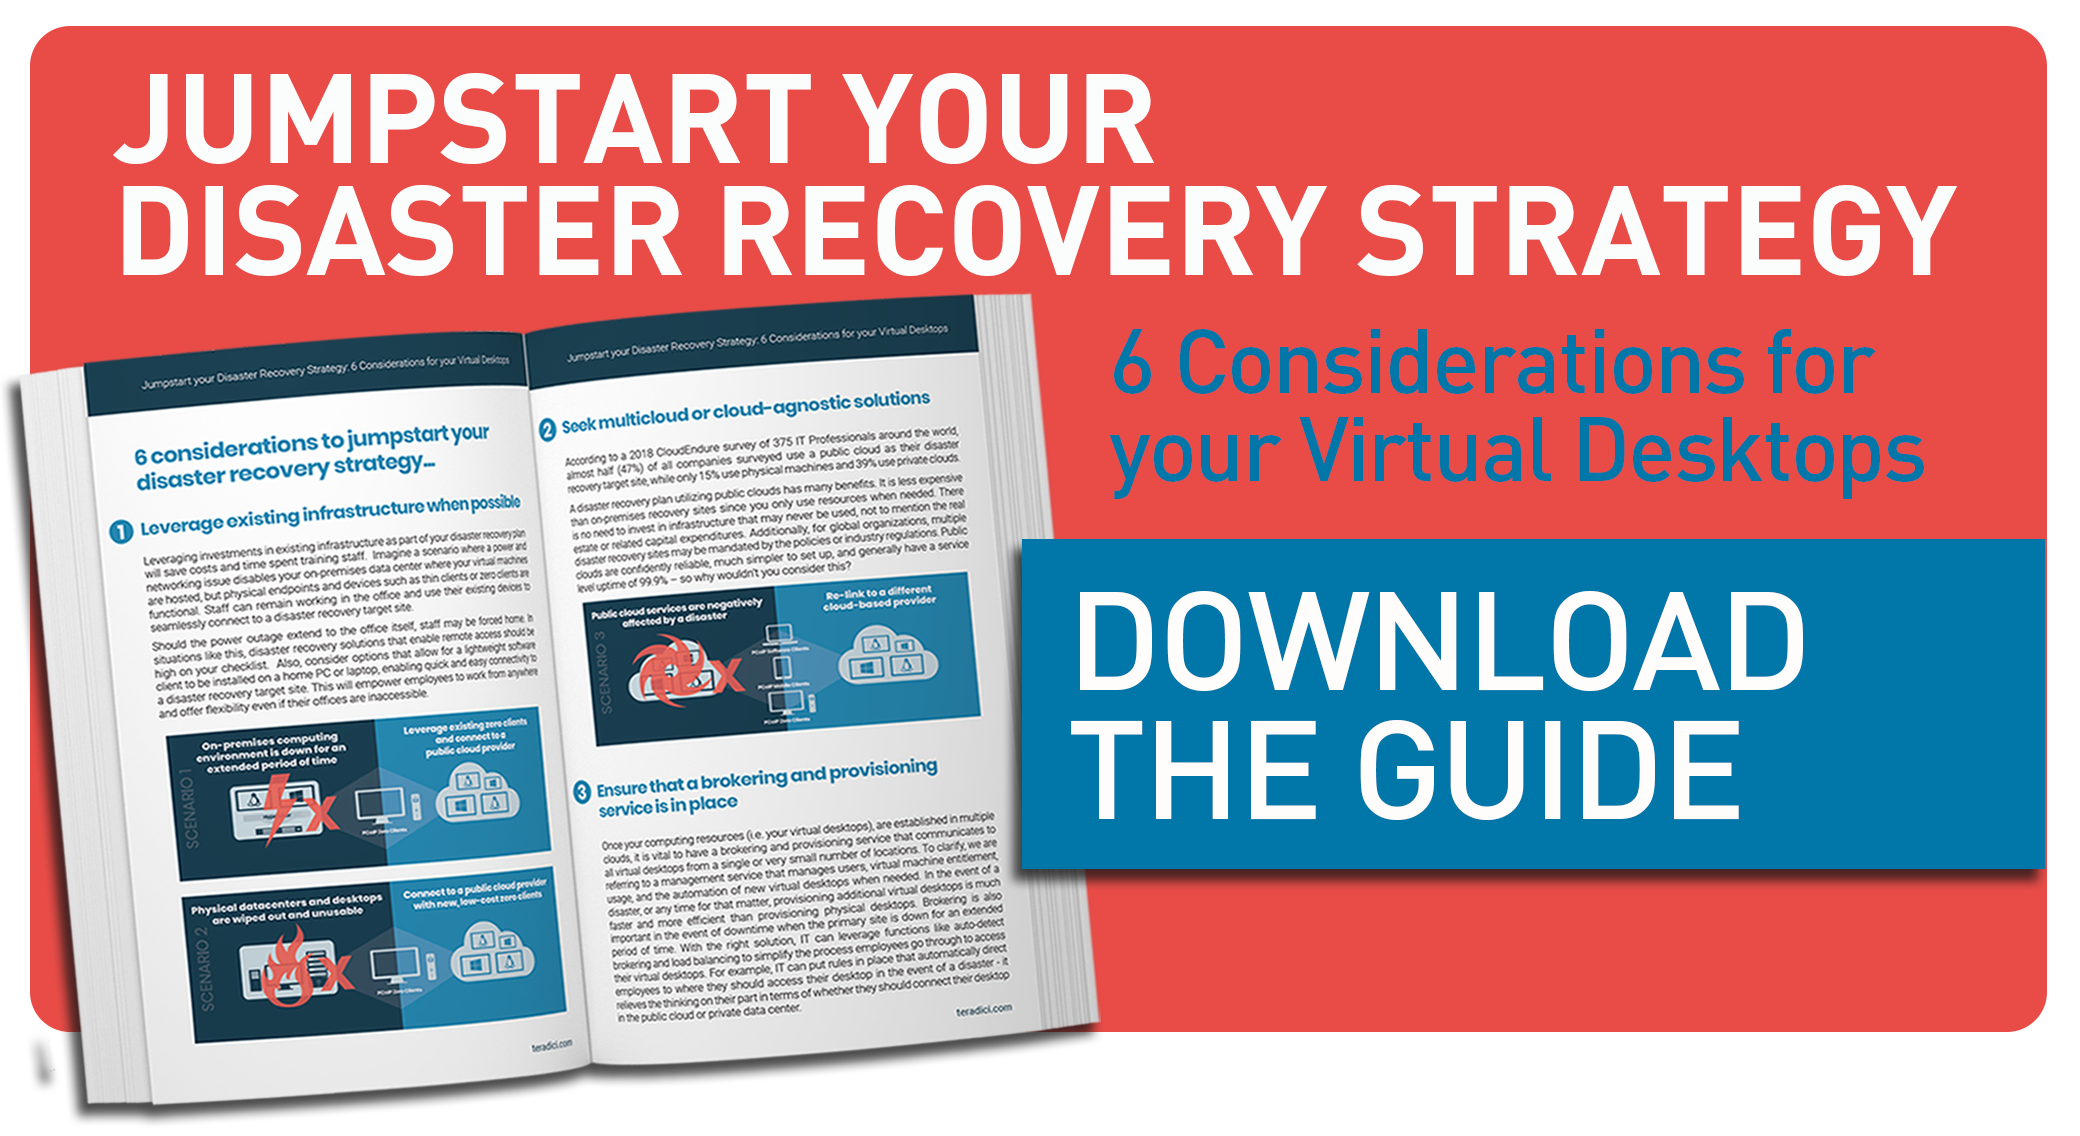 Jumpstart Your Disaster Recovery Strategy